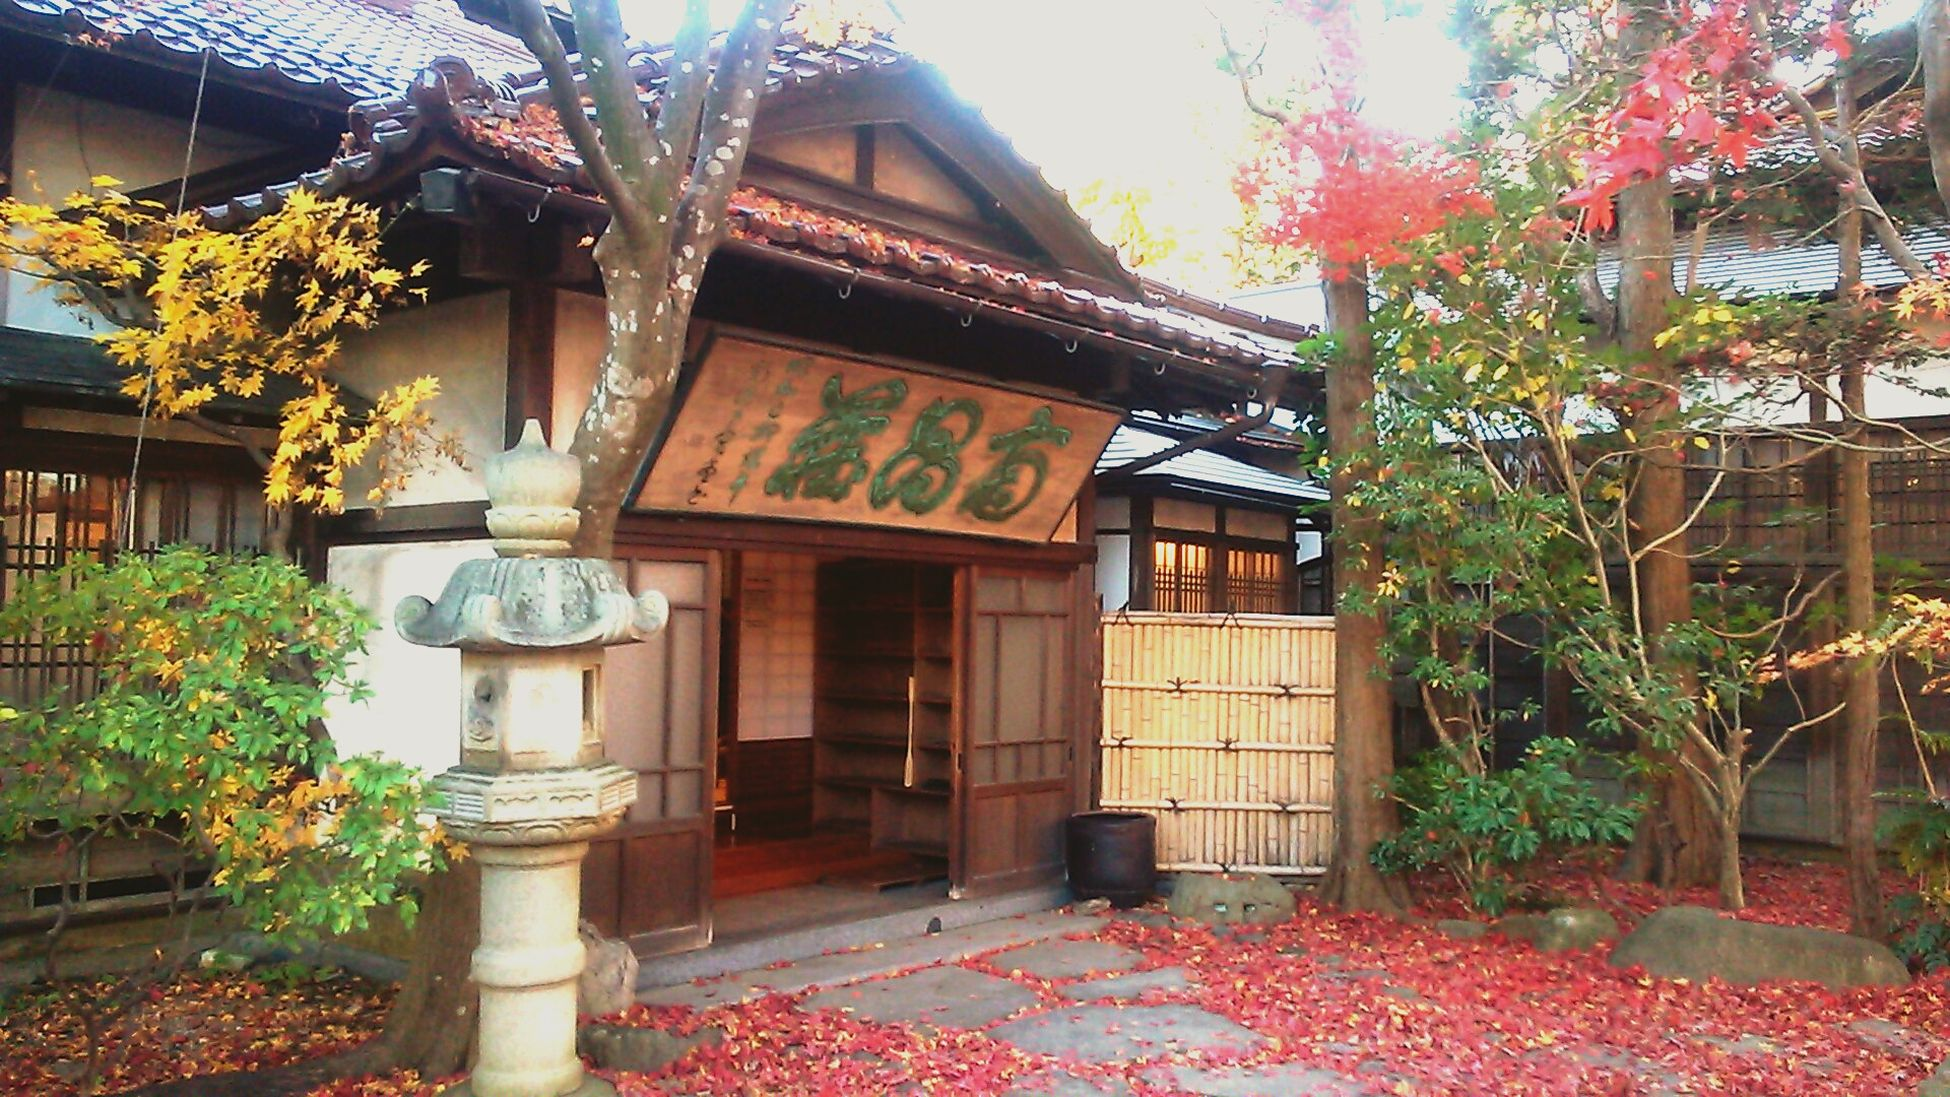 Japanese retroactive house Built Structure Architecture Building Exterior Tree Residential Structure Residential Building Culture House Religion Entrance Day Outdoors Sky Footpath Outside Asian Culture Place Of Worship